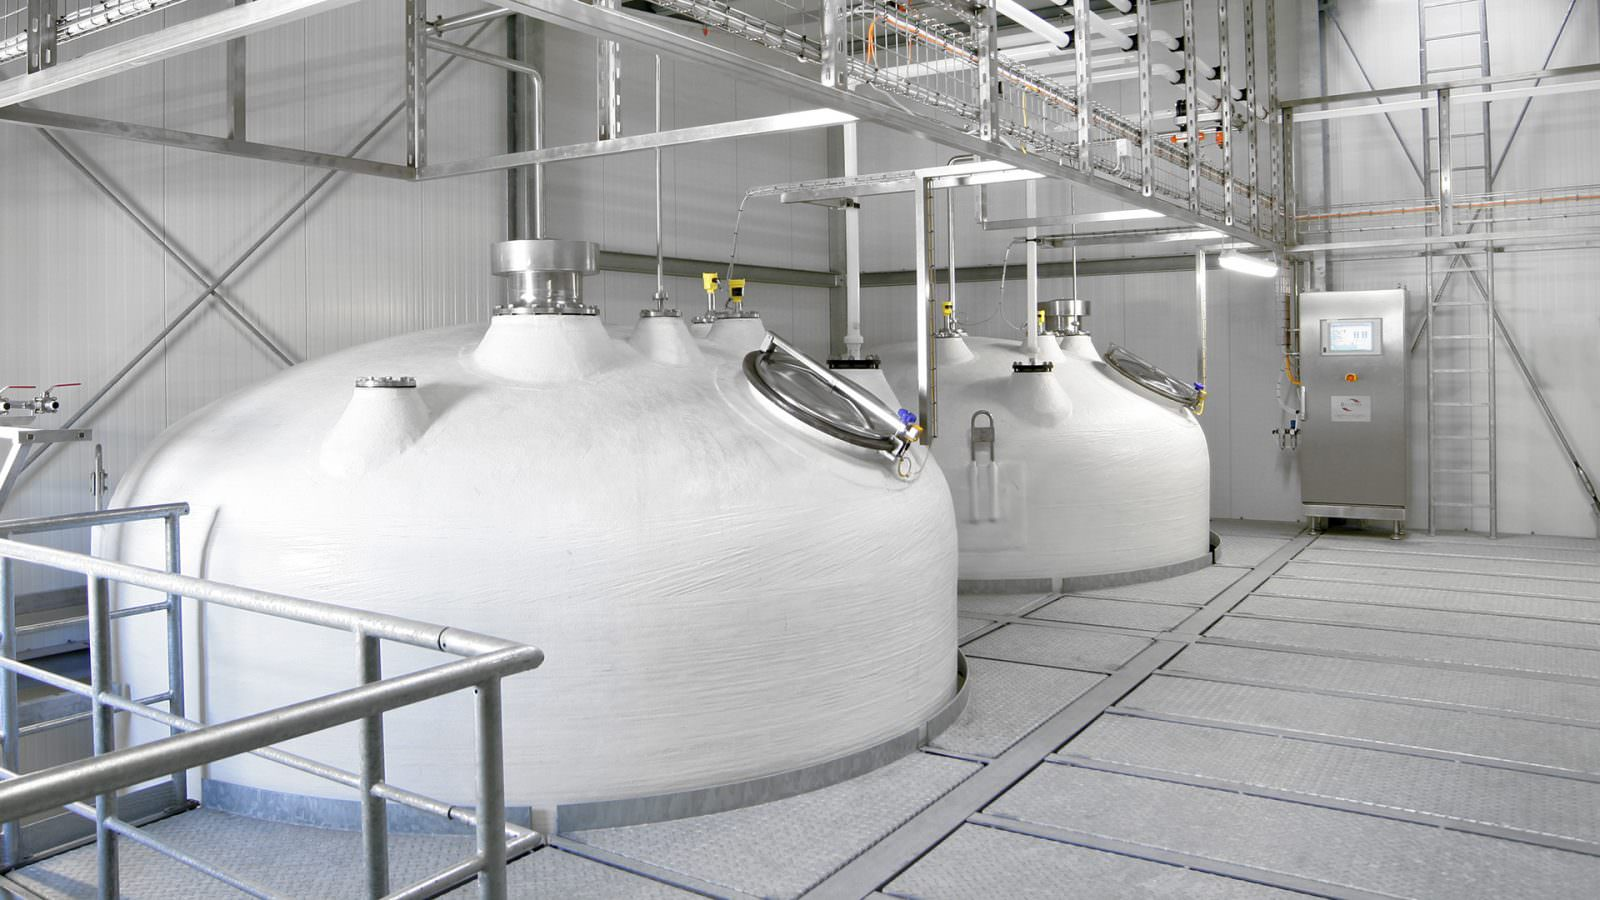 photo of two storage tanks for liquid seasoning